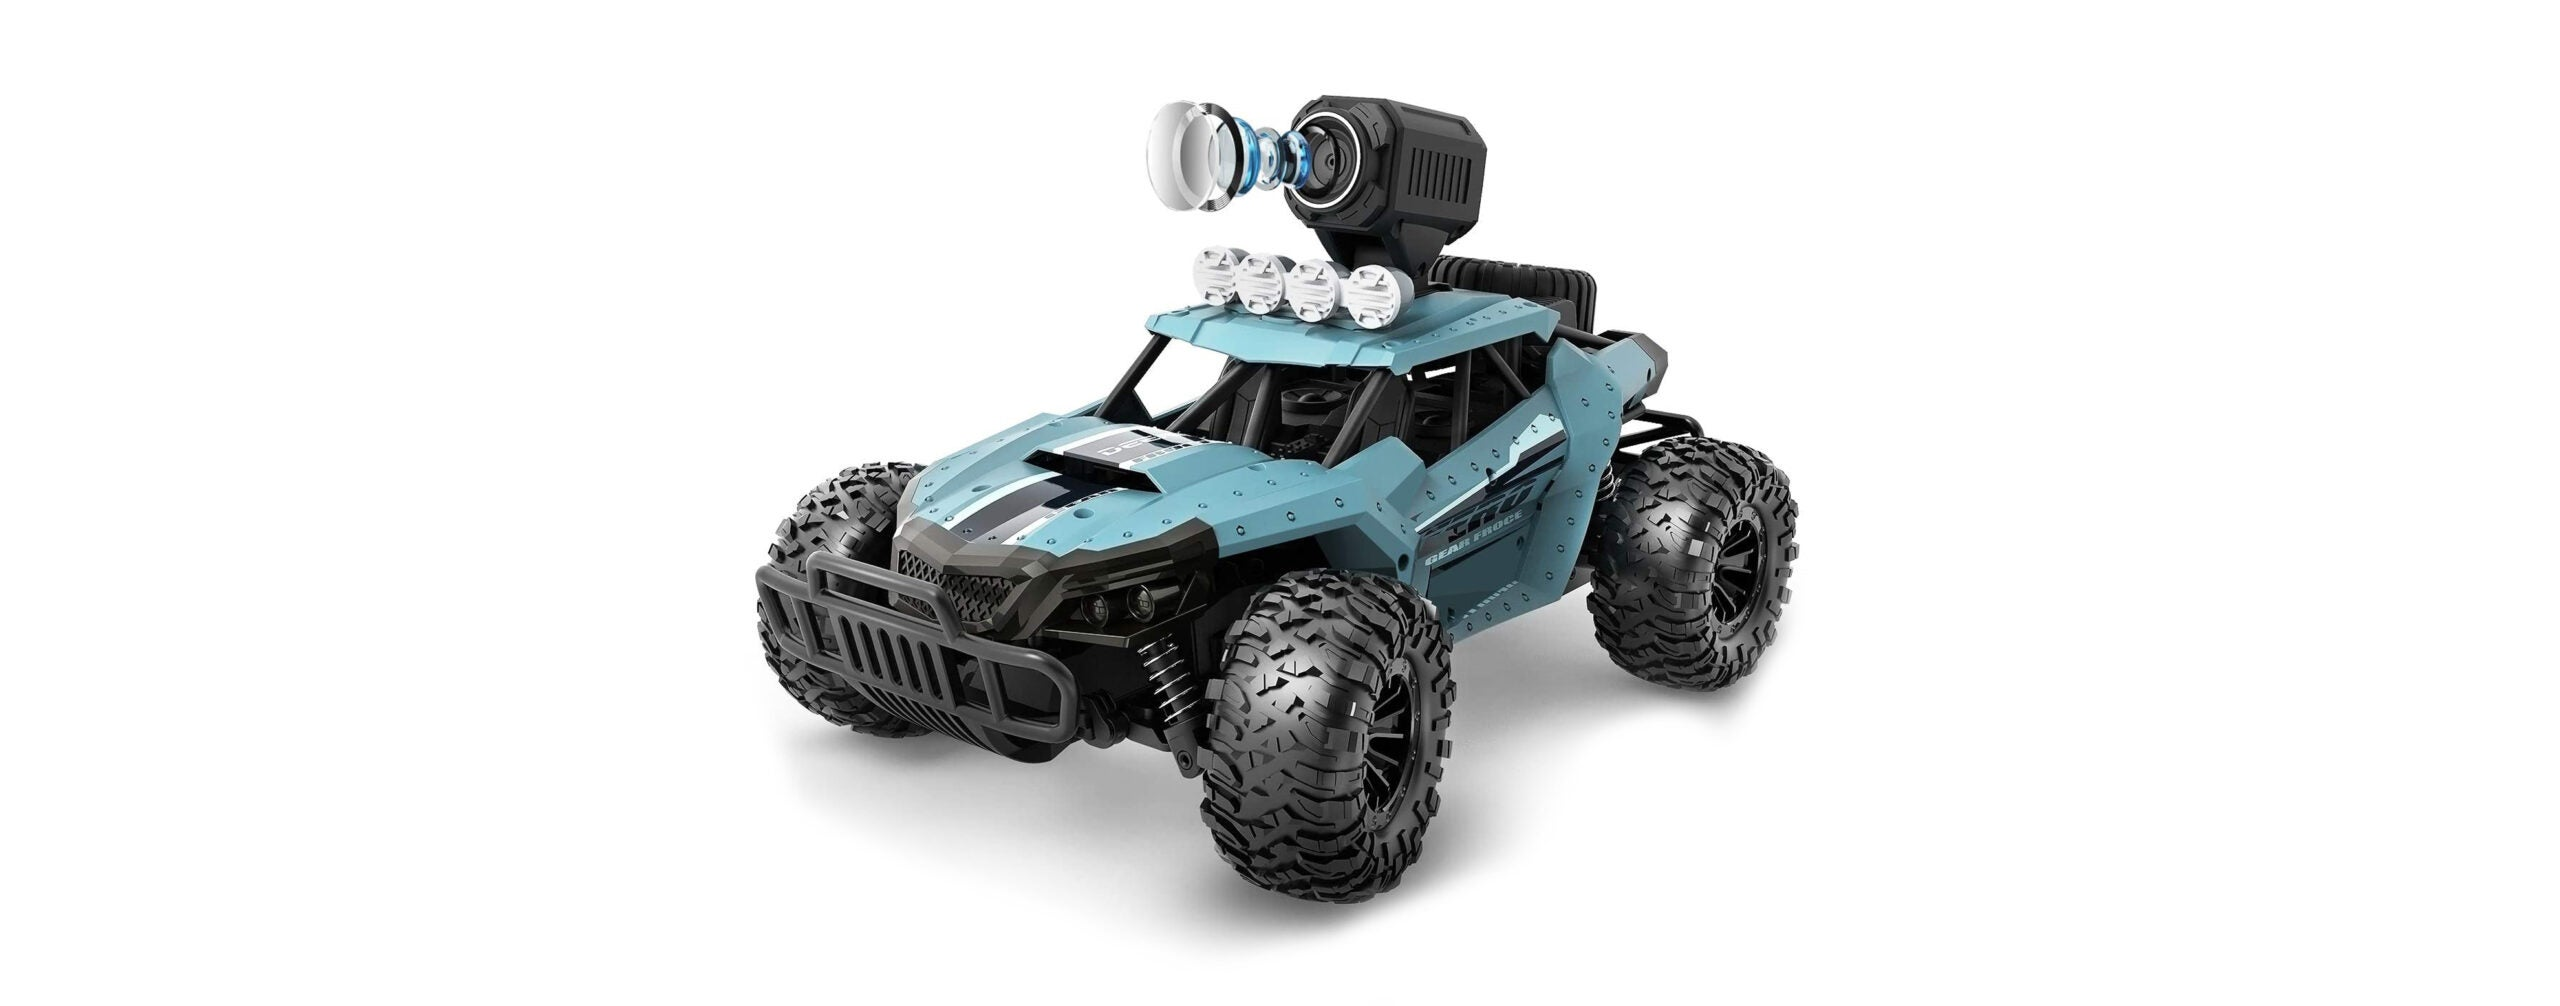 The Best RC Cars (Review) in 2021